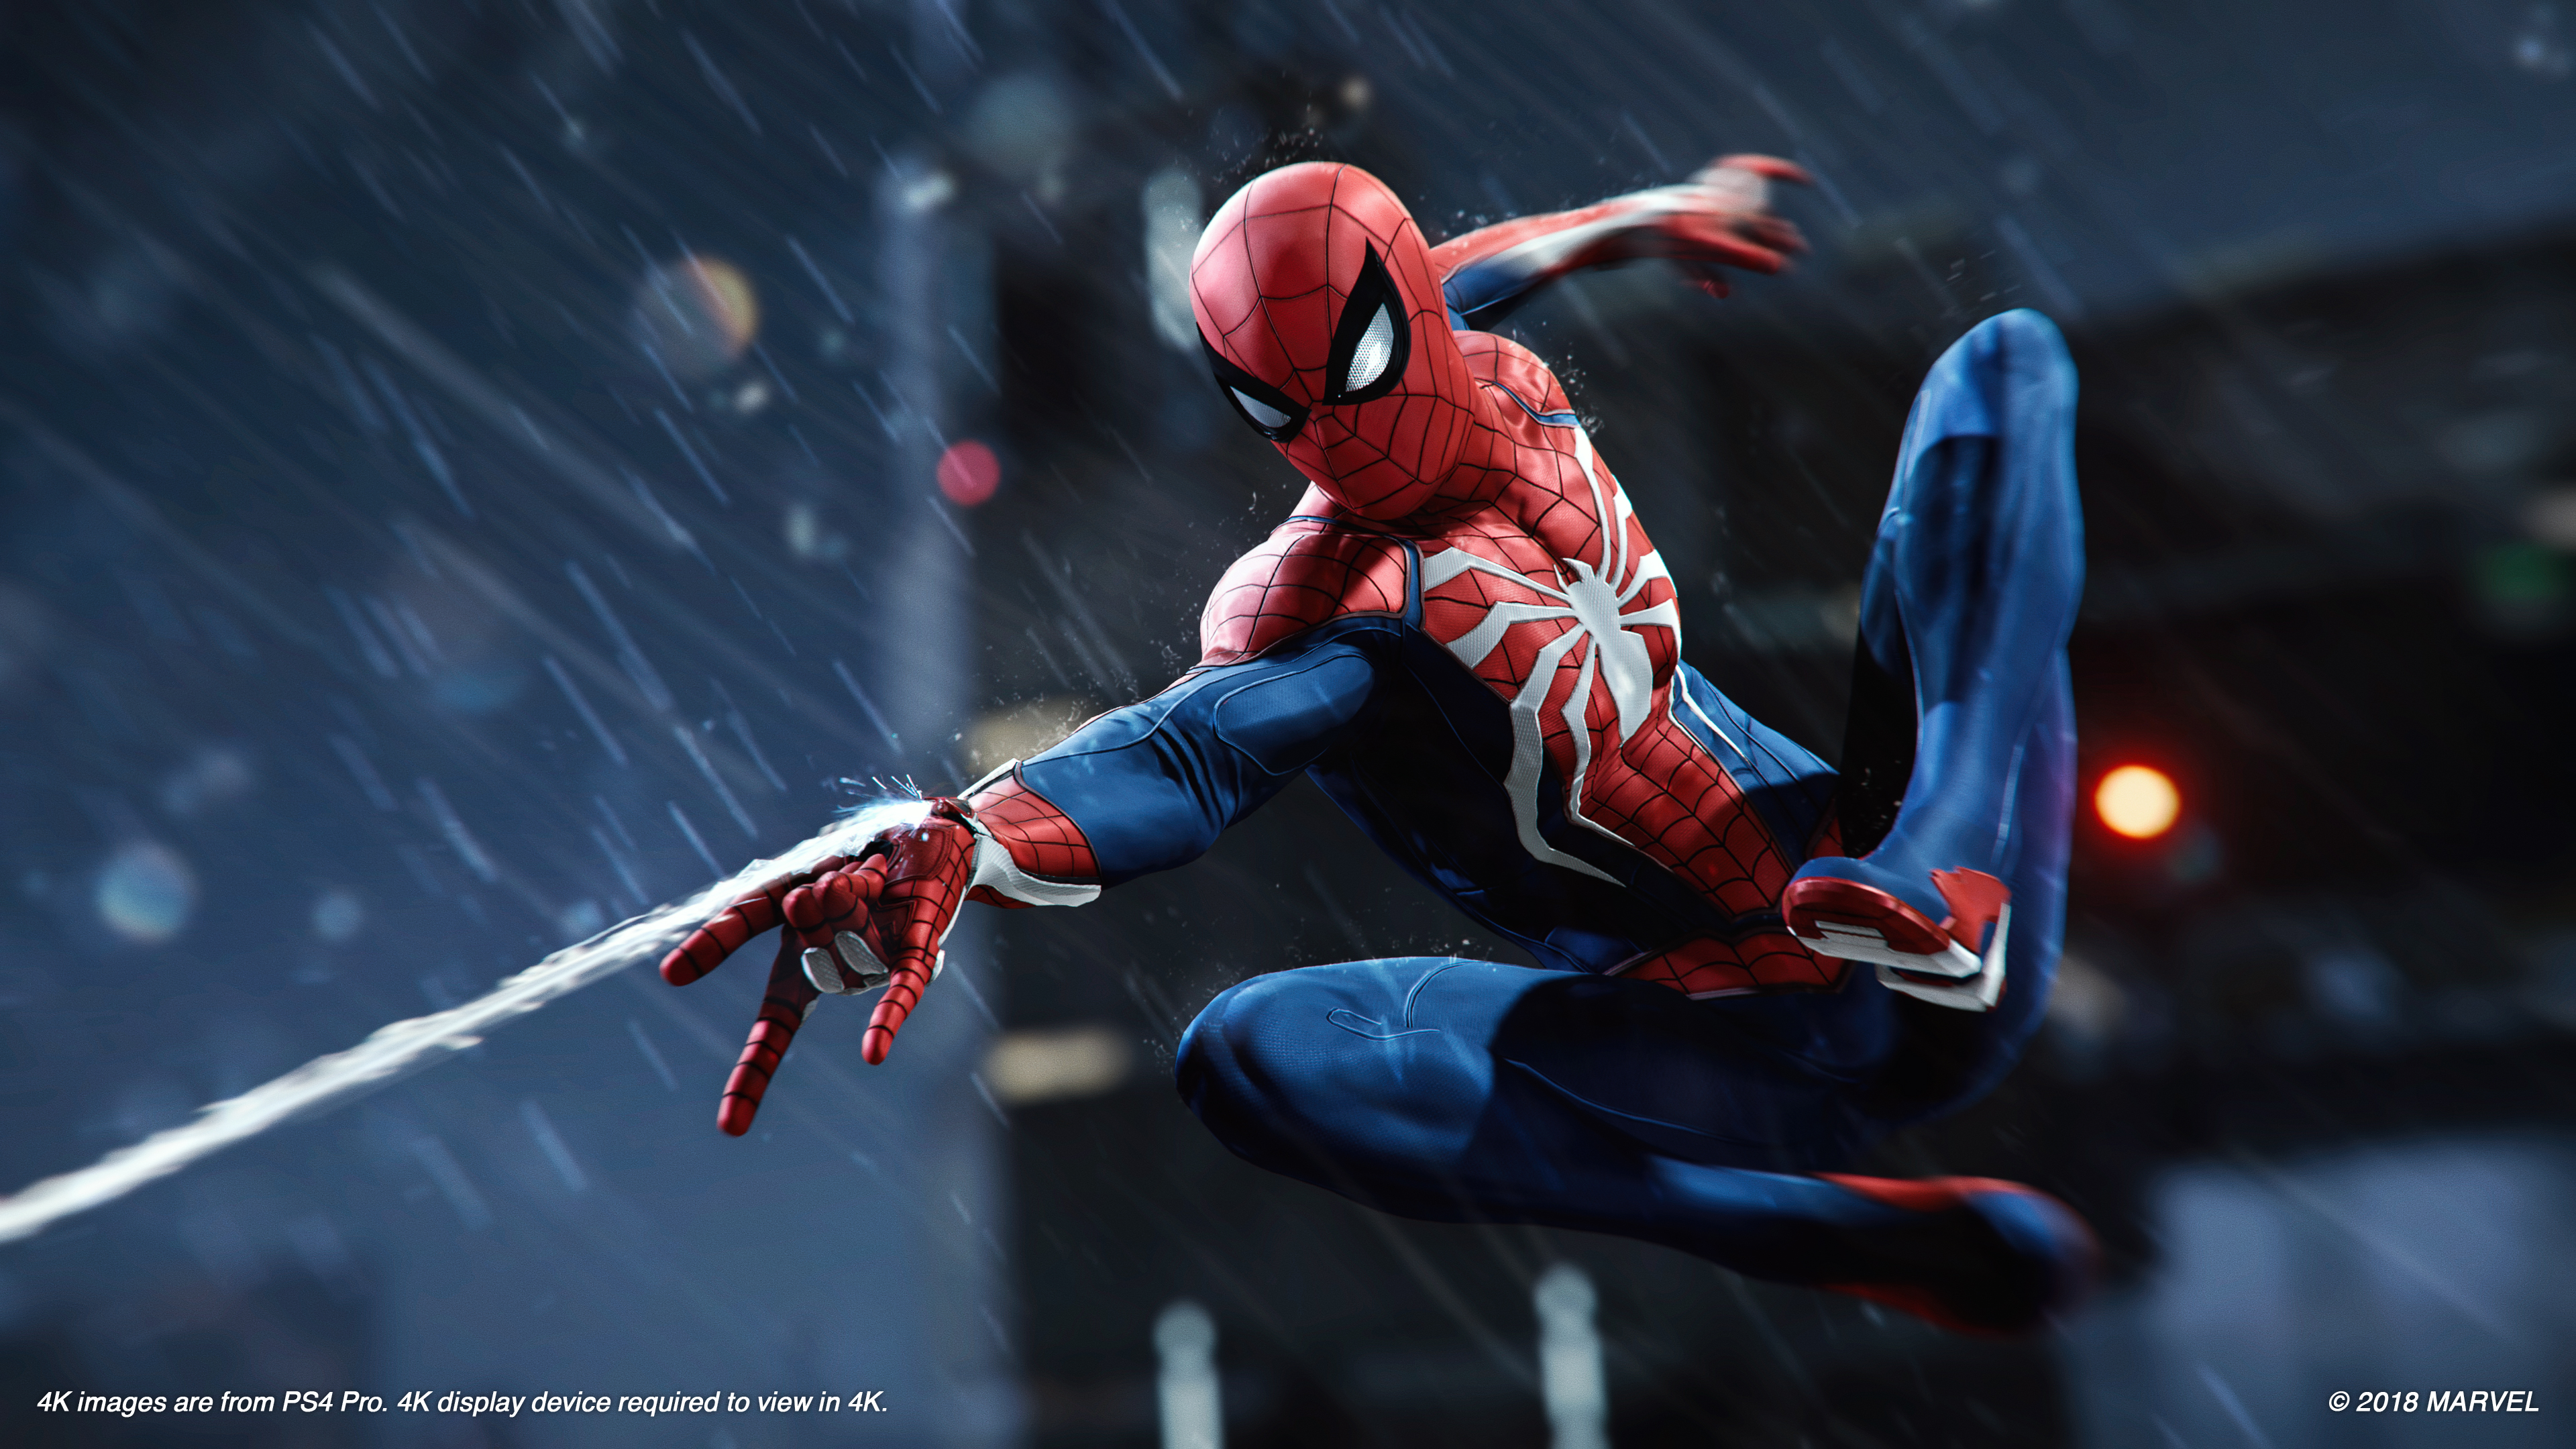 PlayStation reclaims top spot for gaming industry ad spend